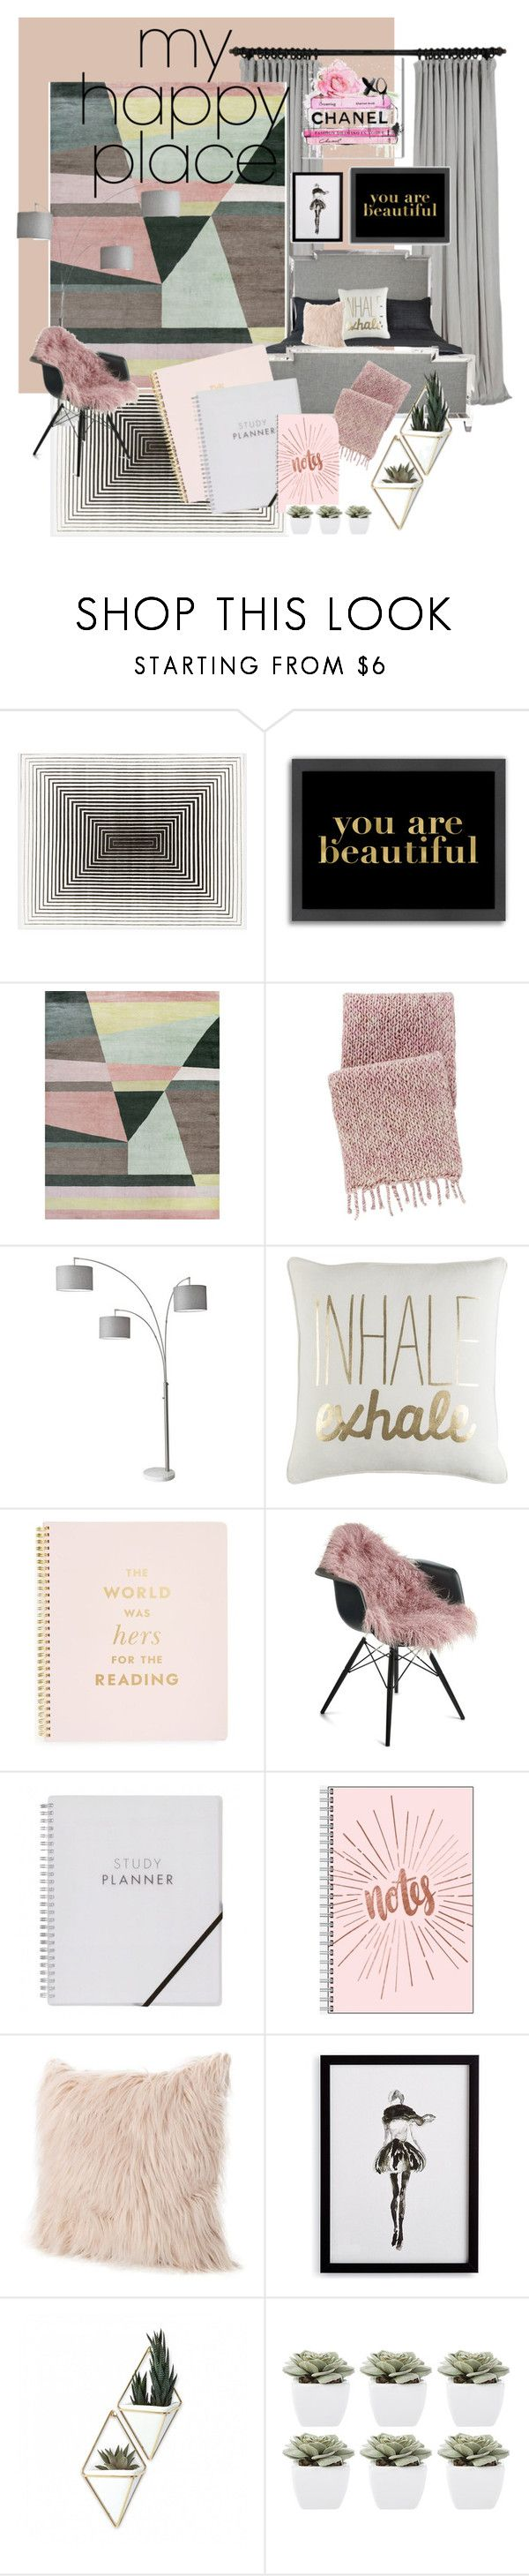 """Crazy & comfy"" by jasvonne on Polyvore featuring interior, interiors, interior design, home, home decor, interior decorating, Americanflat, Bernhardt, Pine Cone Hill and Adesso"